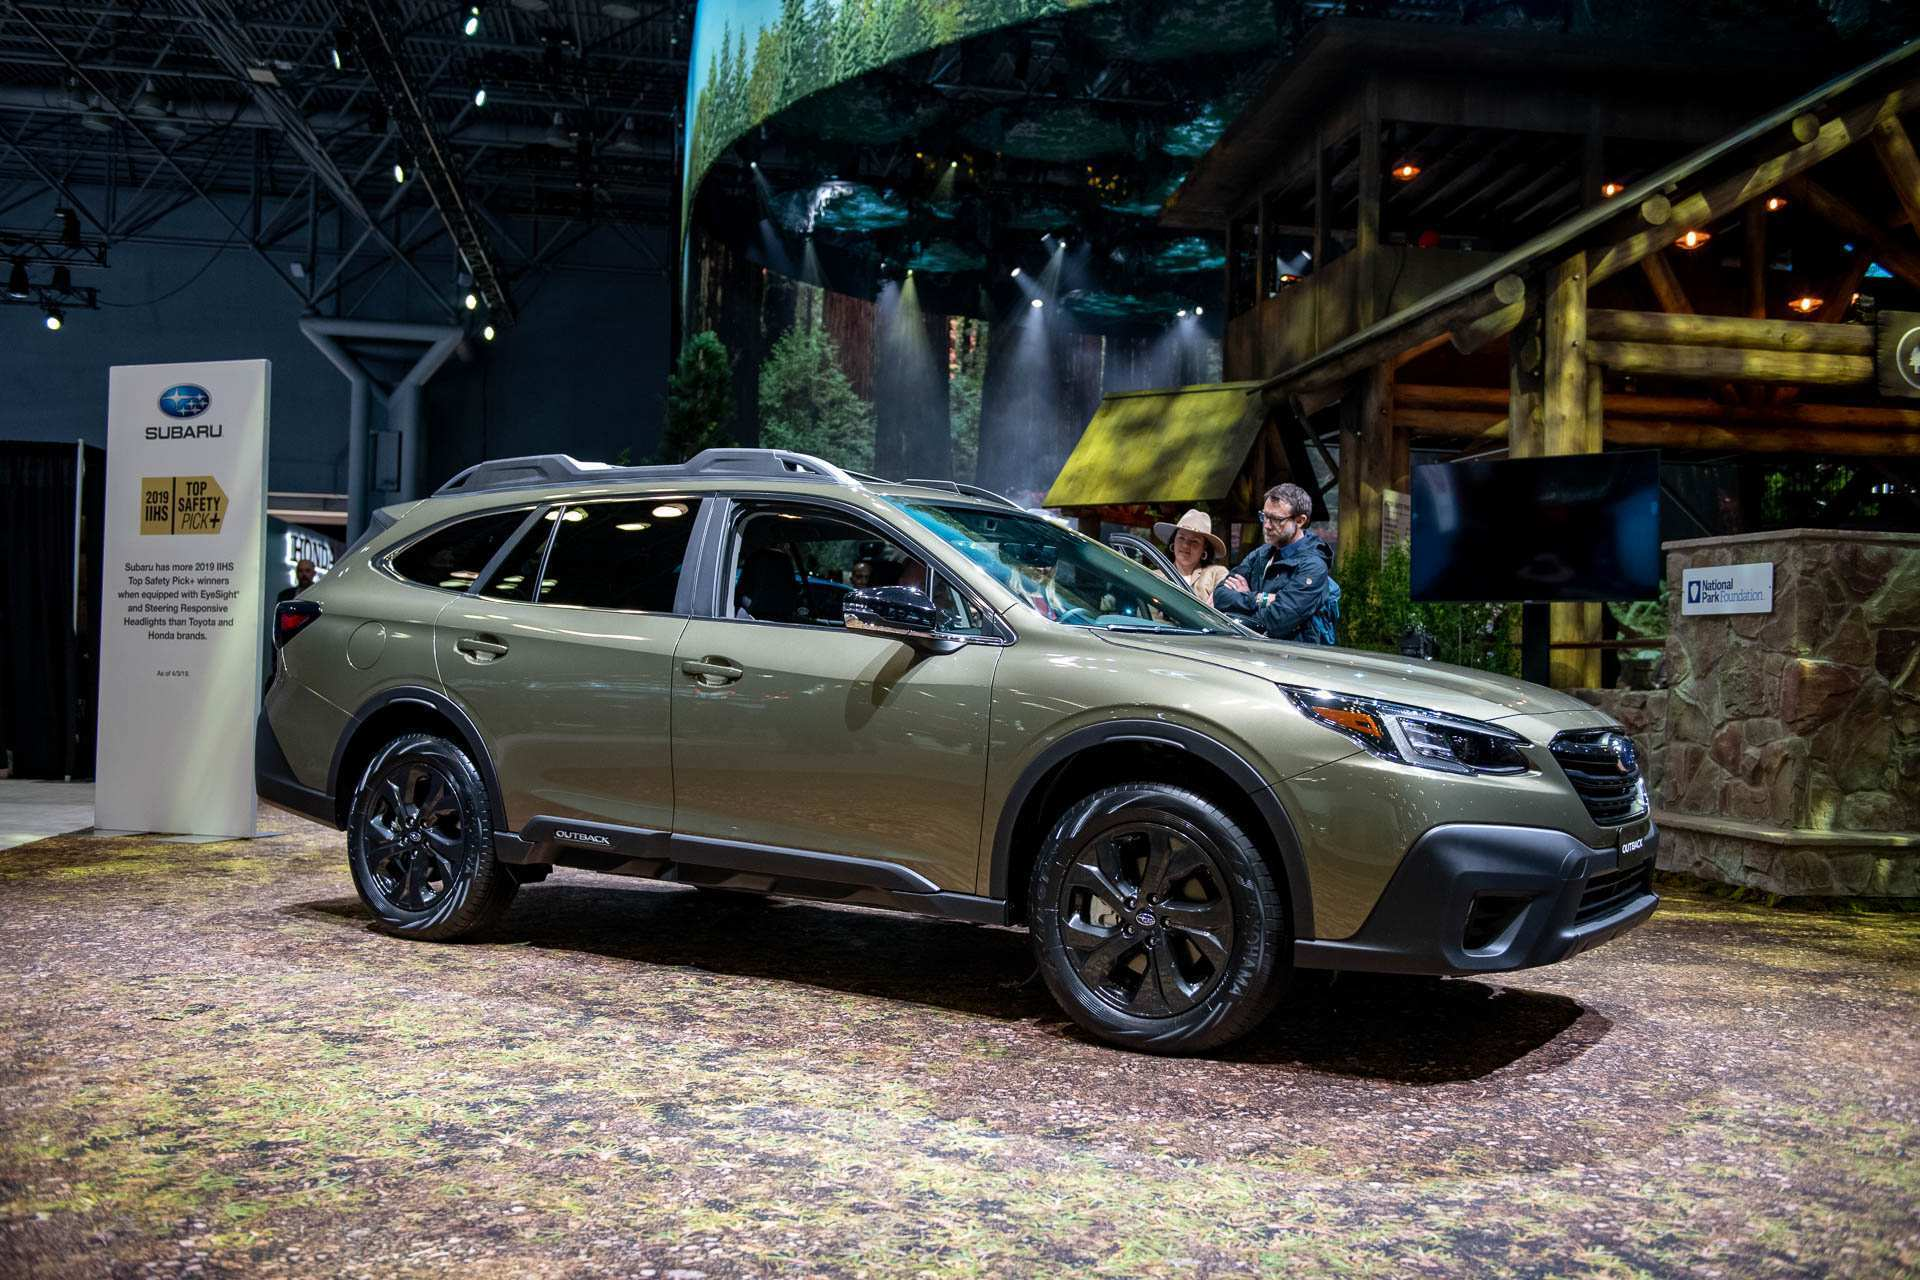 89 A Subaru Outback Update 2020 Review And Release Date